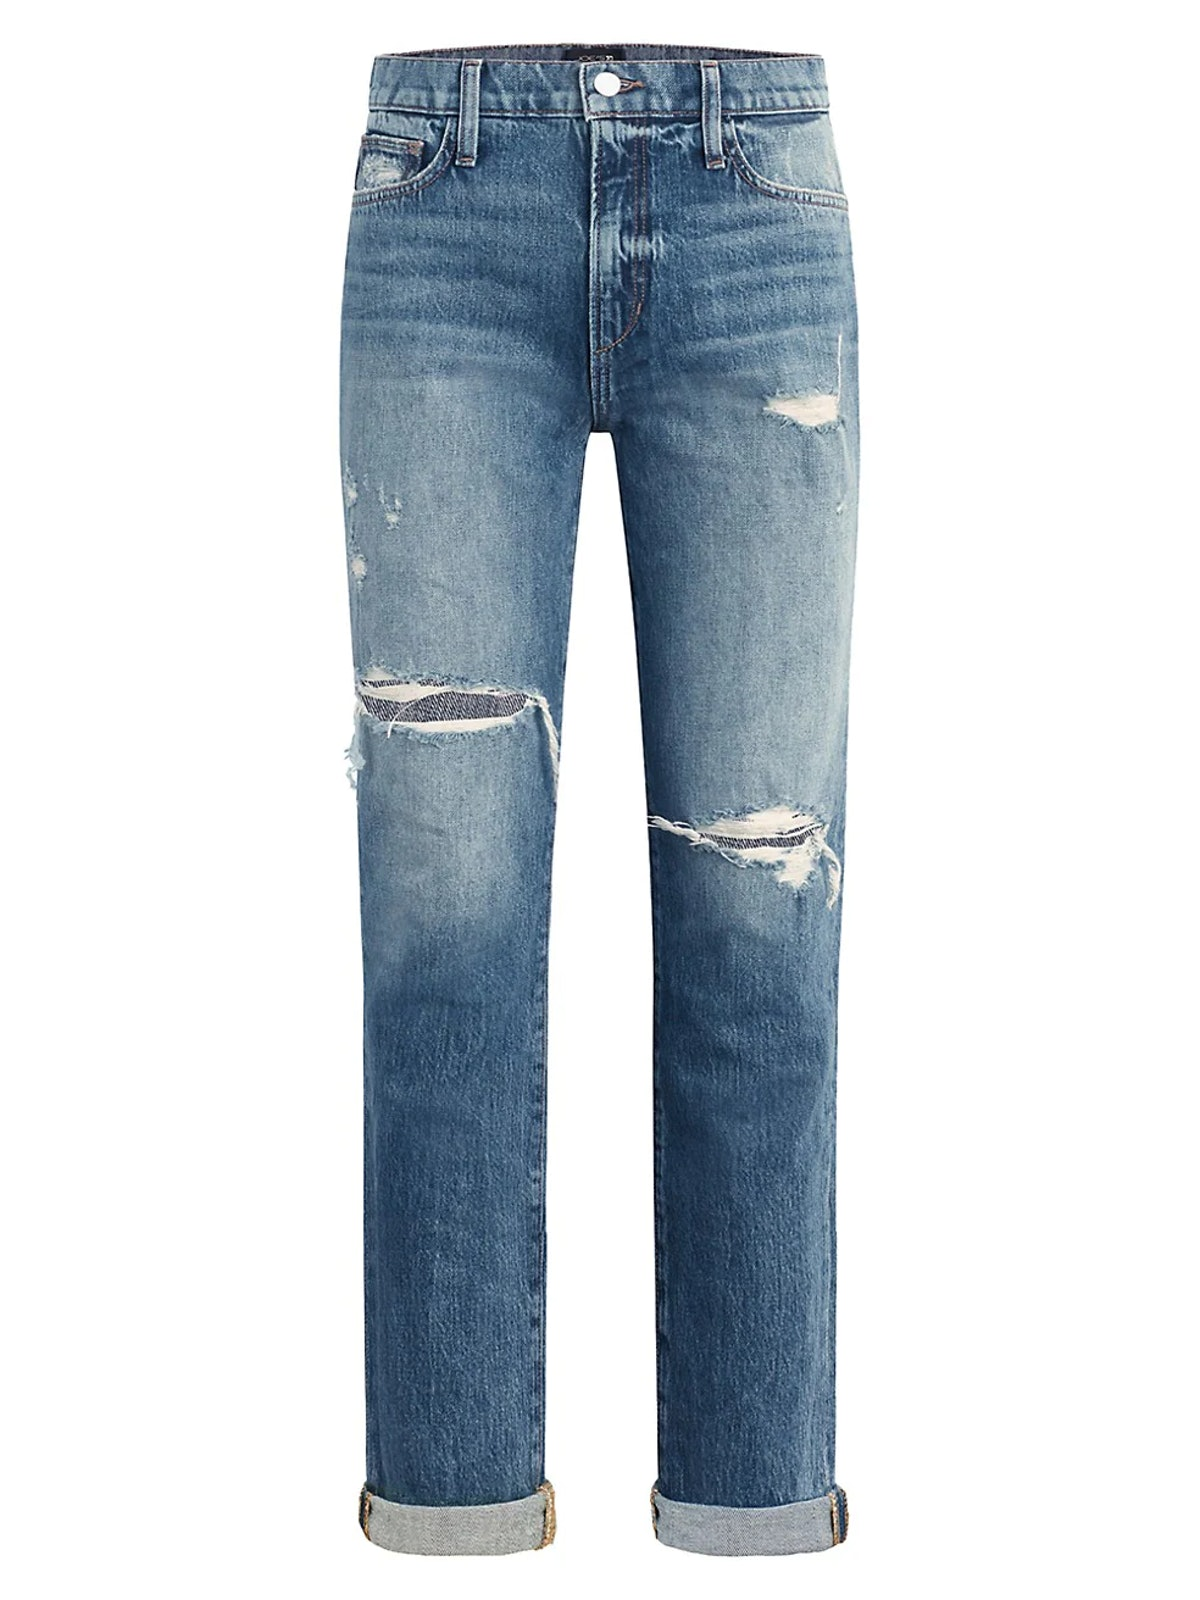 The Scout Distressed Double Roll Jeans from Joe's Jeans, available to shop via Saks Fifth Avenue.